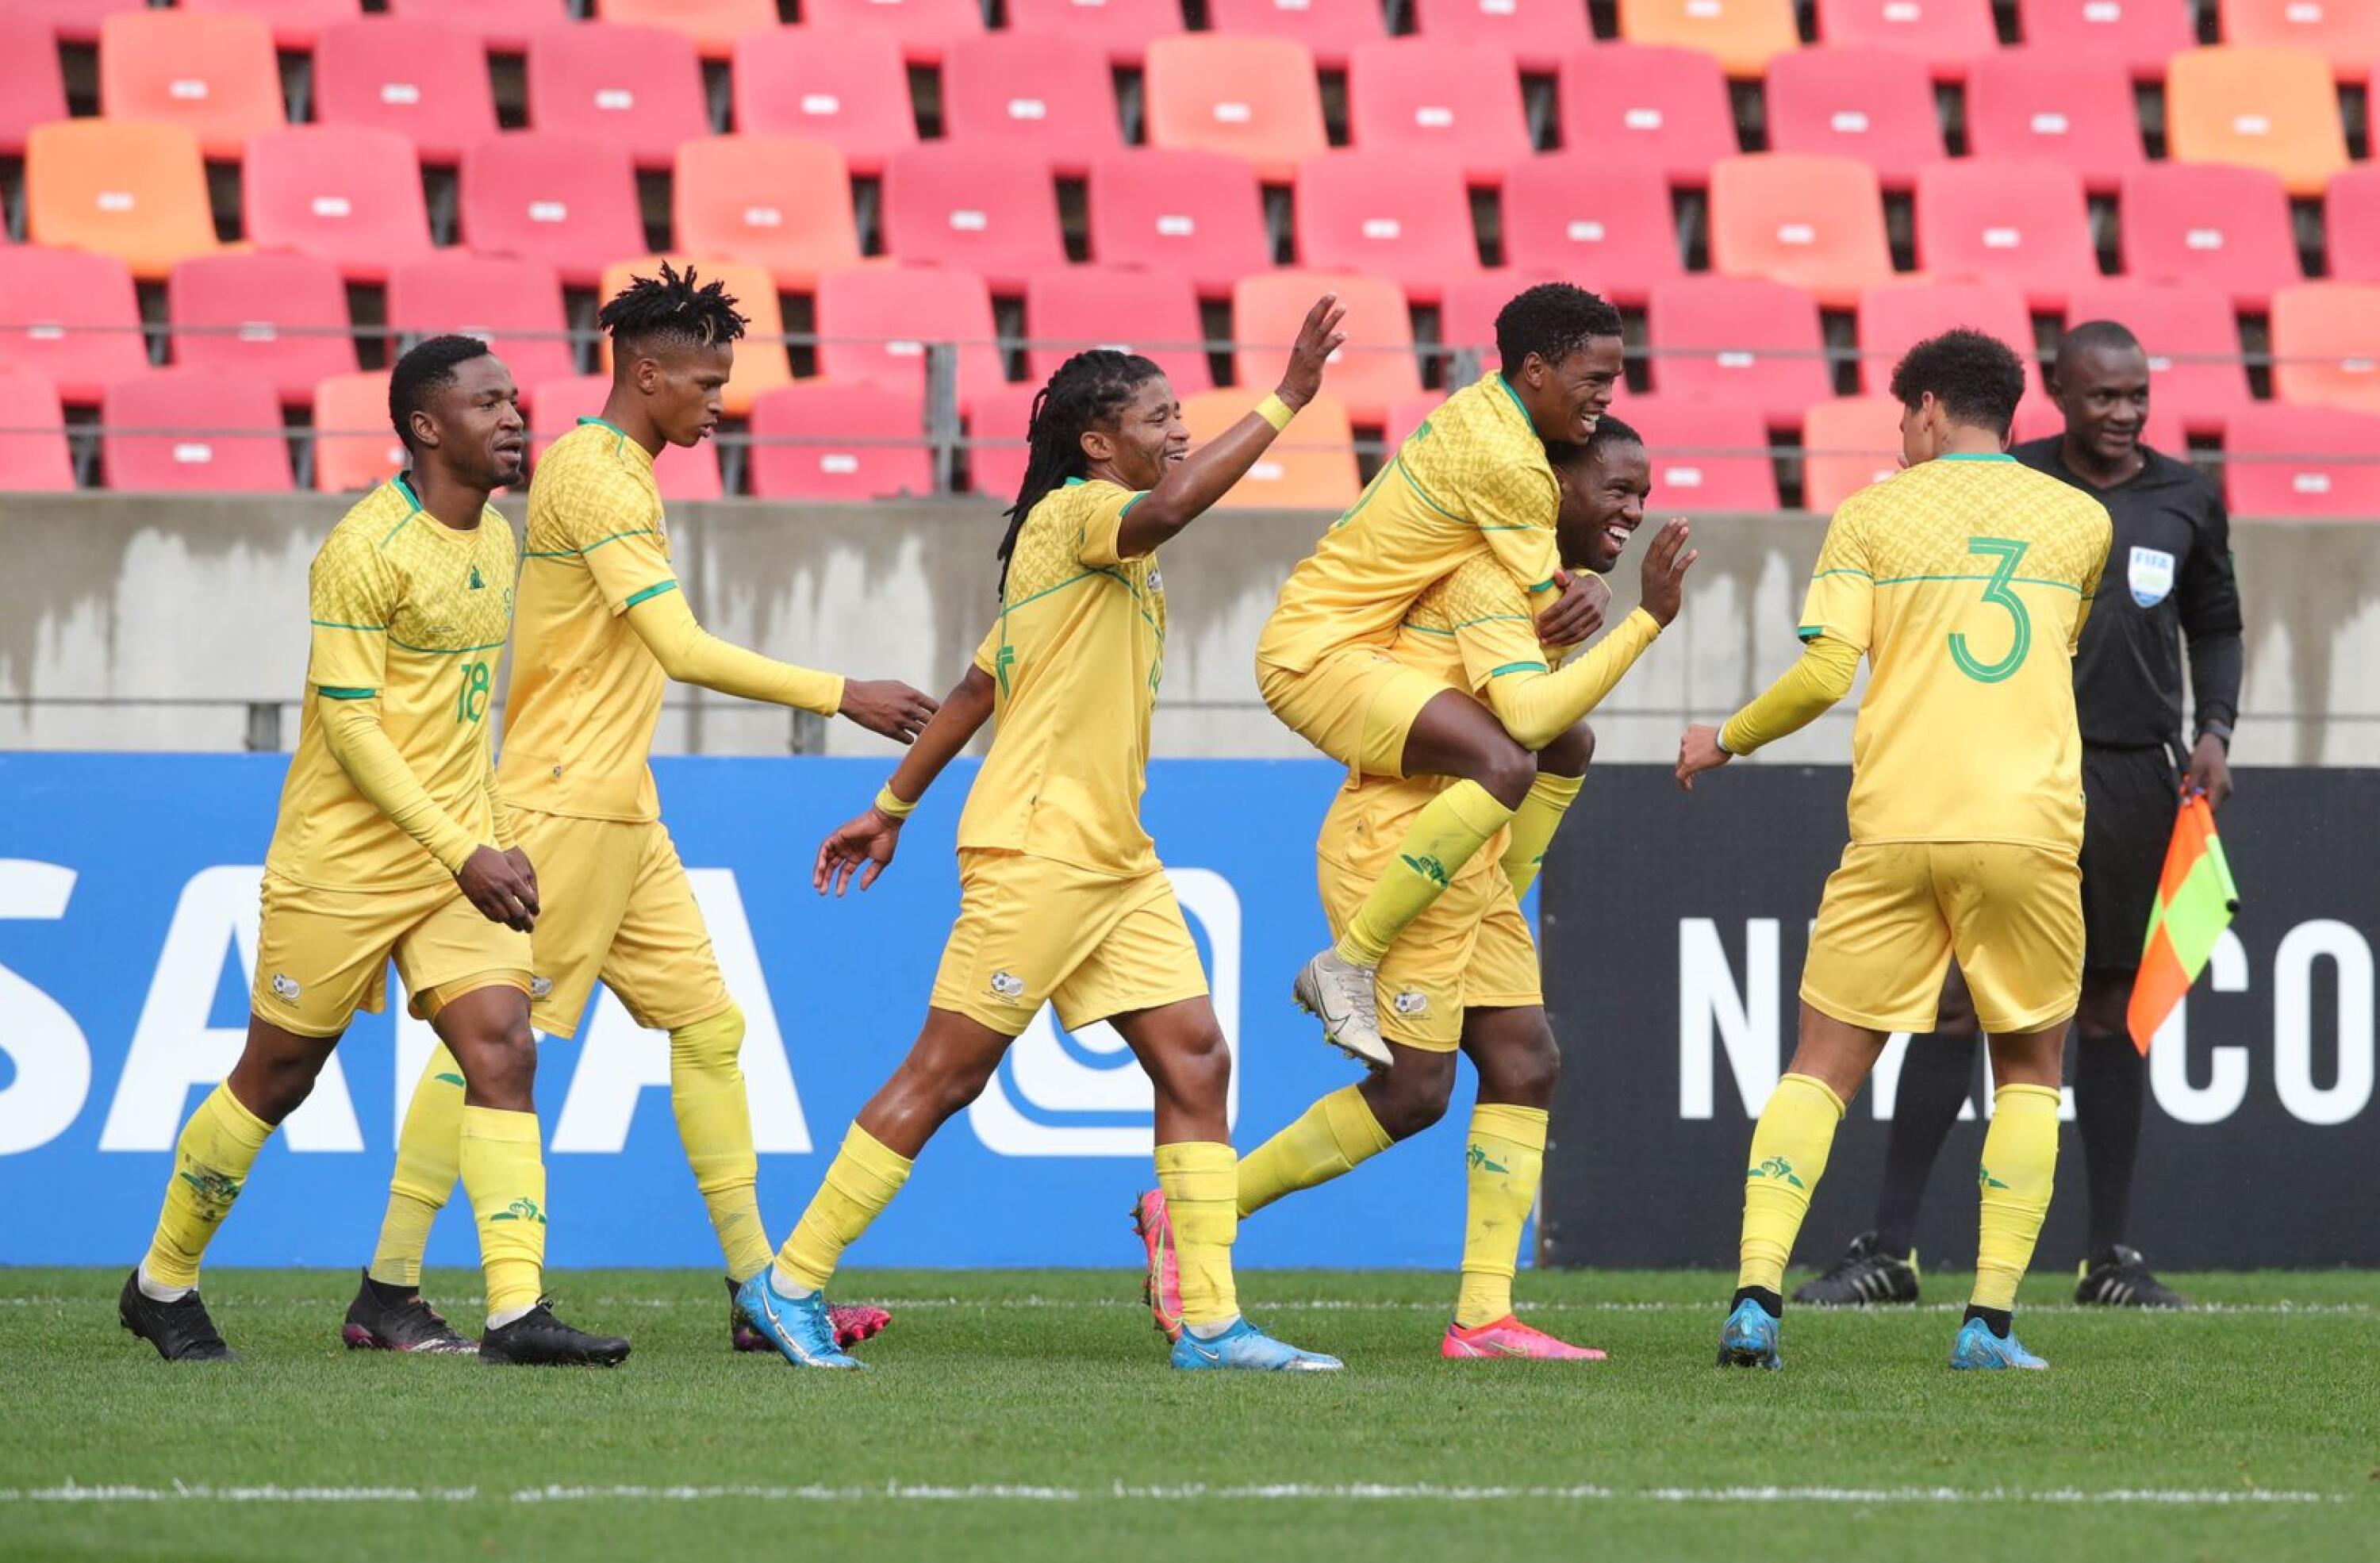 South Africa's Victor Letsoalo celebrates with teammates after scoring one of is three goals during their Cosafa Cup match against Lesotho at Nelson Mandela Bay Stadium in Gqeberha on Tuesday